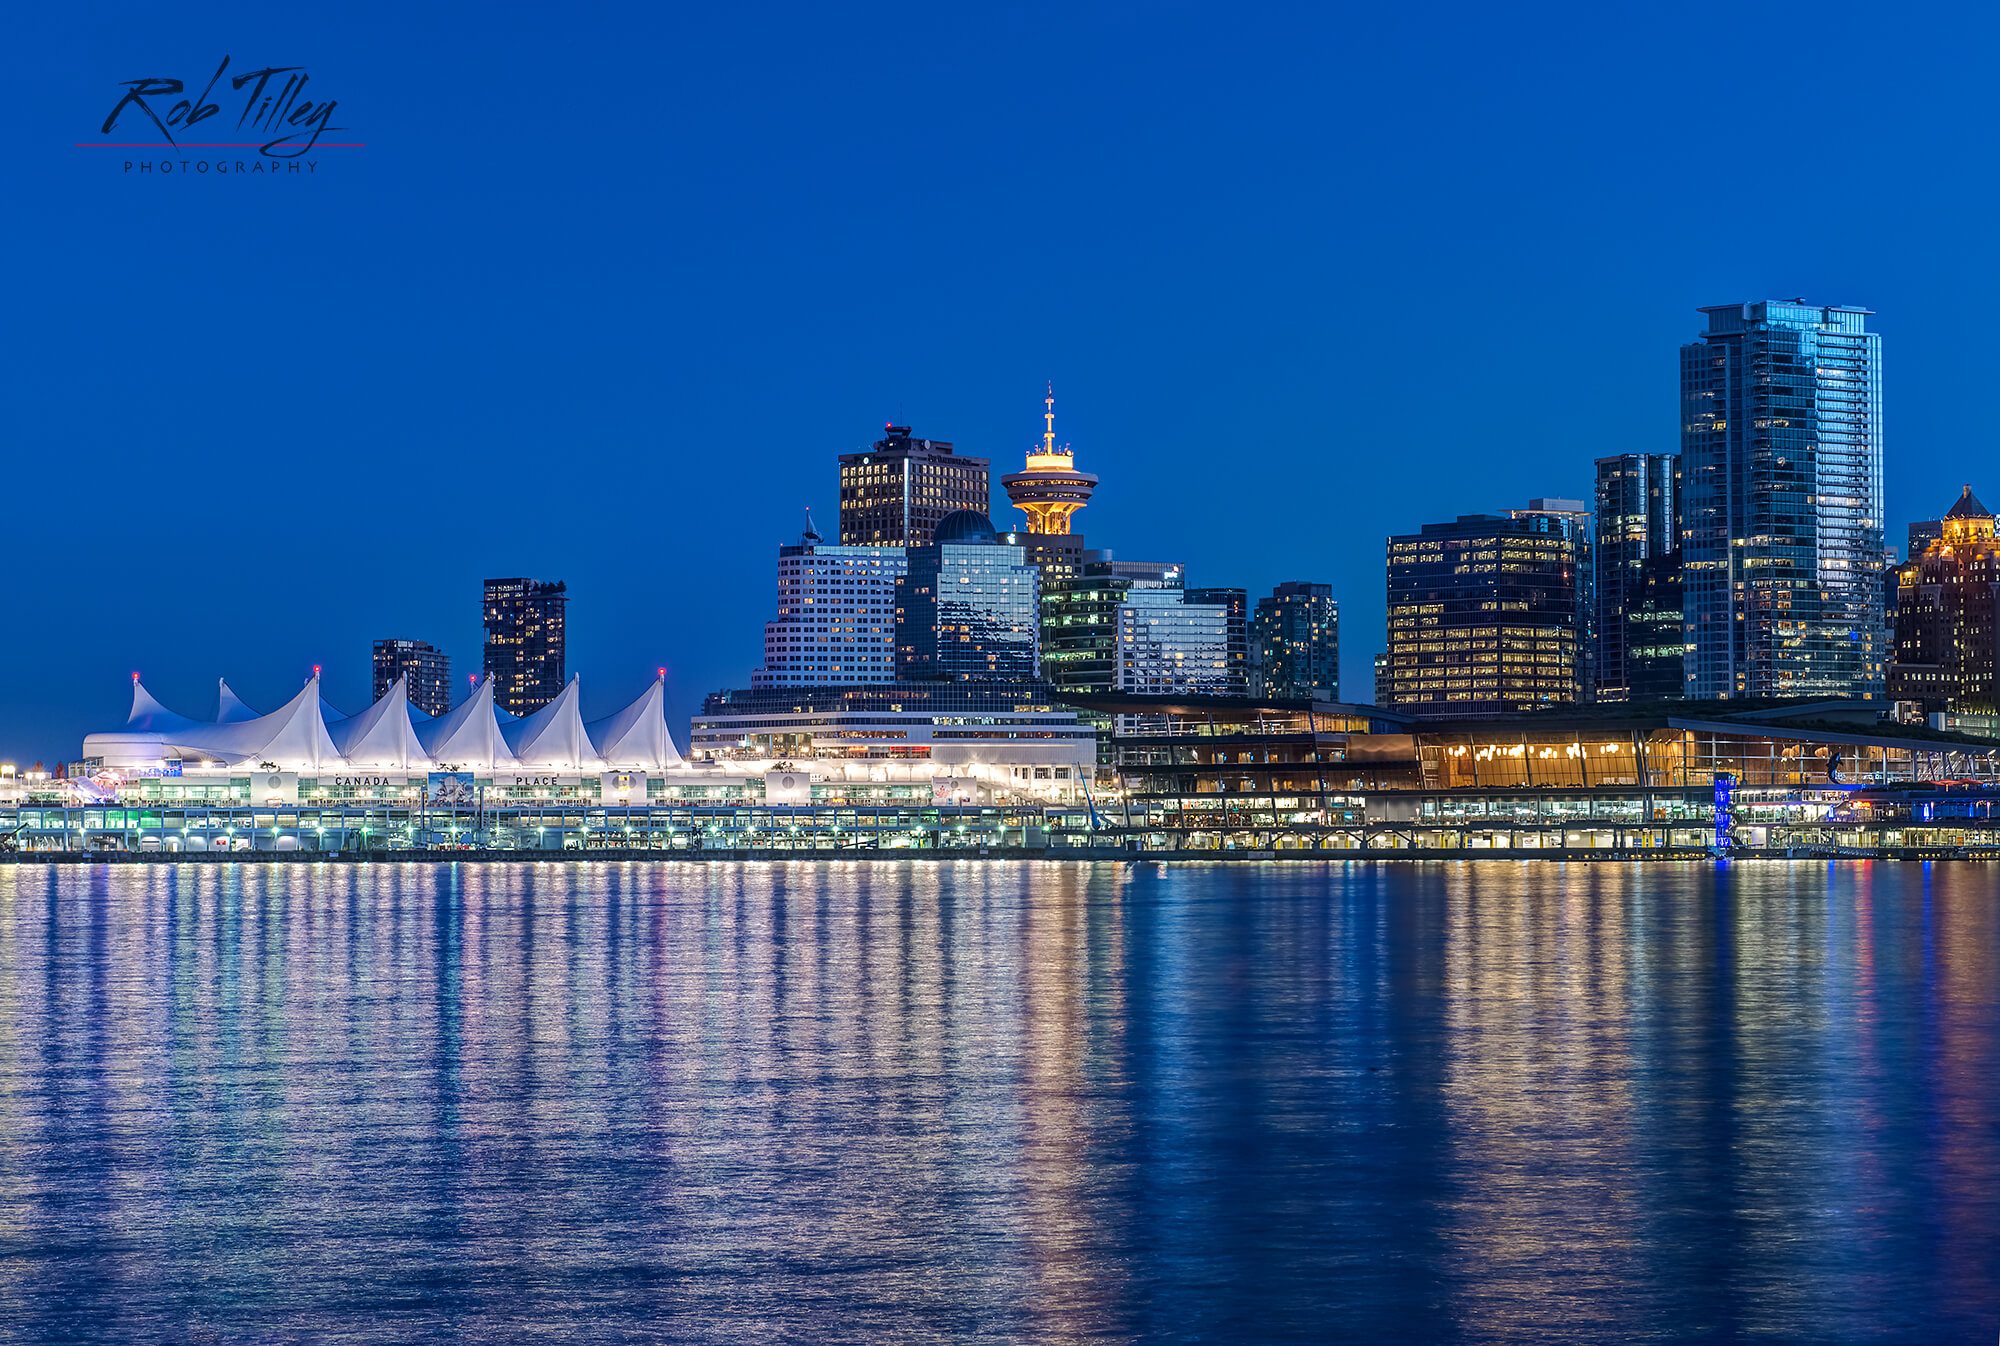 Twilight Vacouver Waterfront.jpg